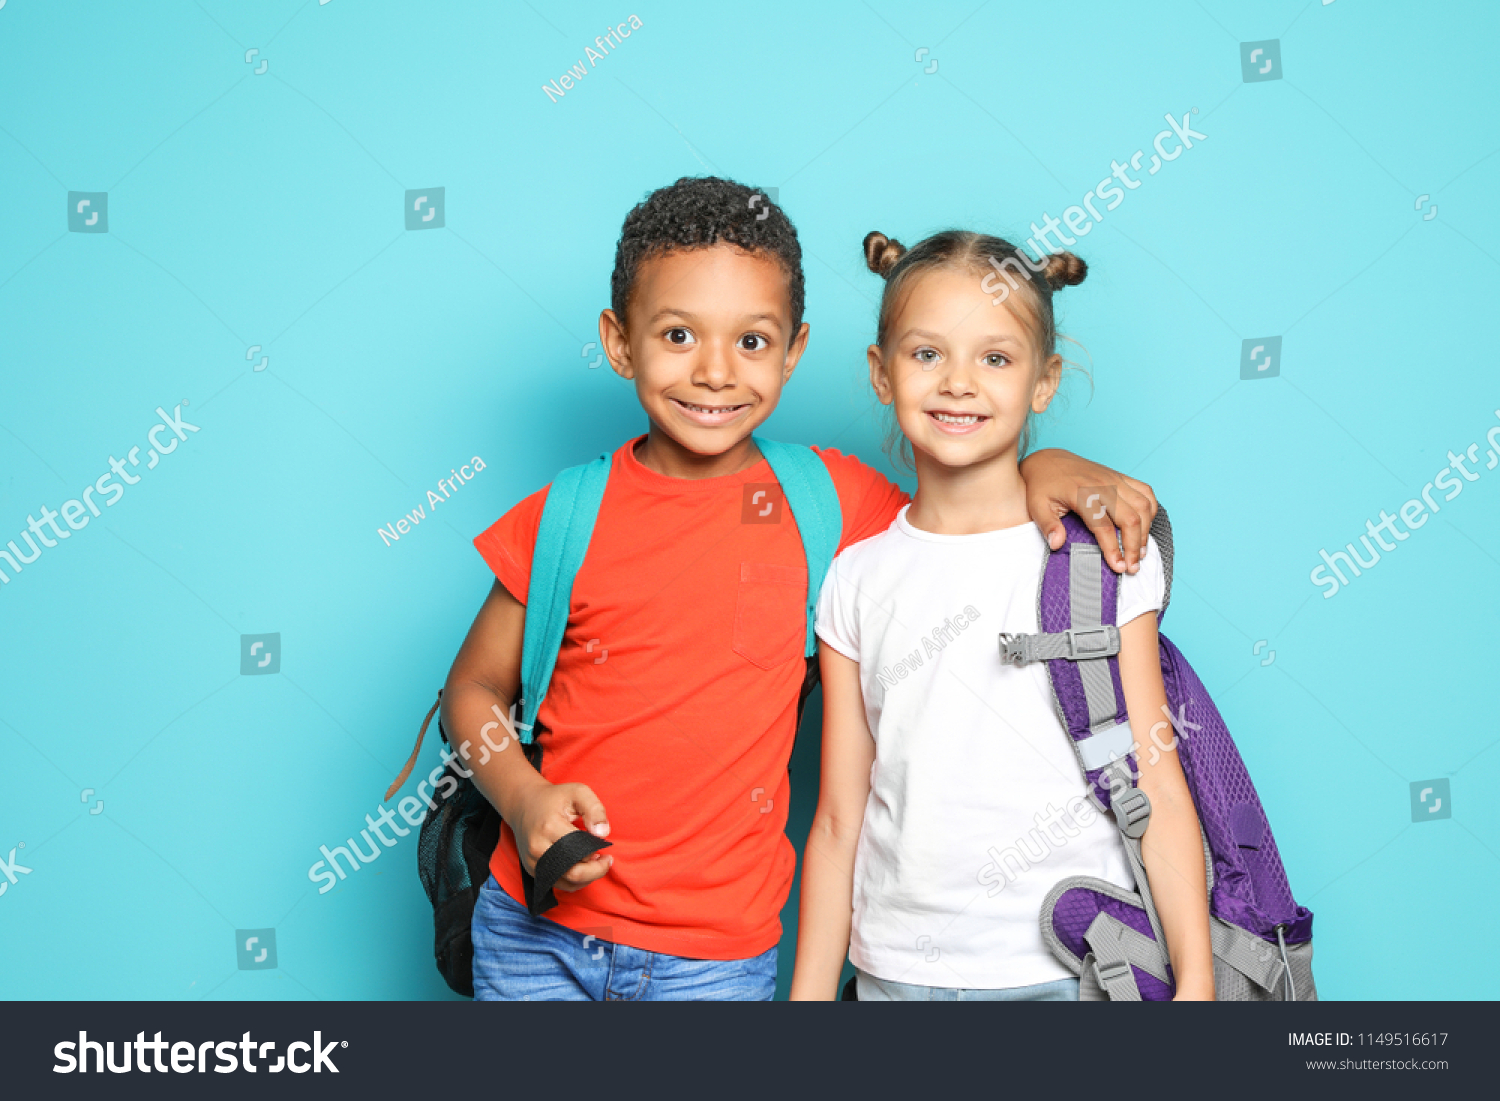 f495afc455 Little School Children Backpacks On Color Stock Photo (Edit Now ...